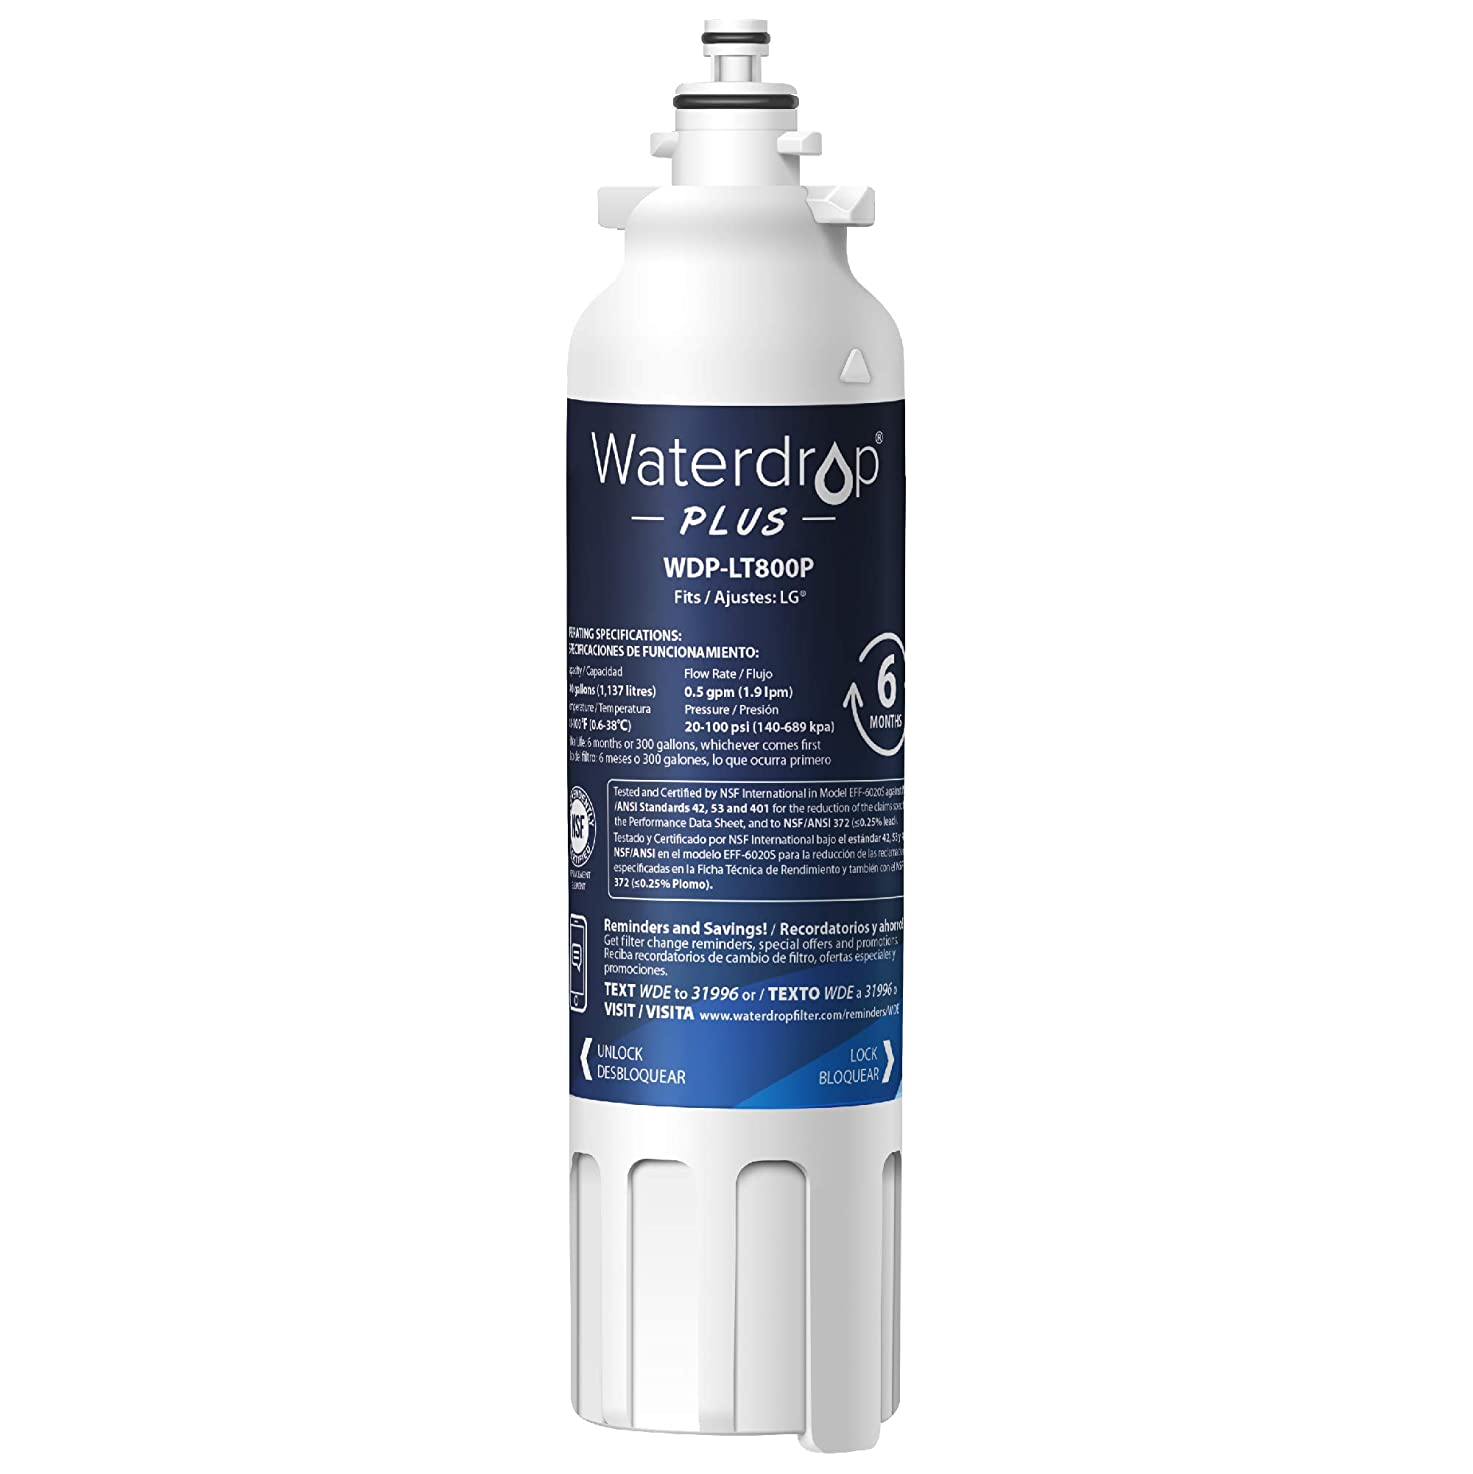 Waterdrop Plus ADQ73613401 Refrigerator Water Filter, Compatible with LG LT800P, Kenmore 9490, LSXS26326S, LMXC23746S, 469490, ADQ73613402, LMXC23746D, LSXS26366S, Reduces Lead, Chlorine, Cyst, Benzene and More, NSF 401&53&42 Certified